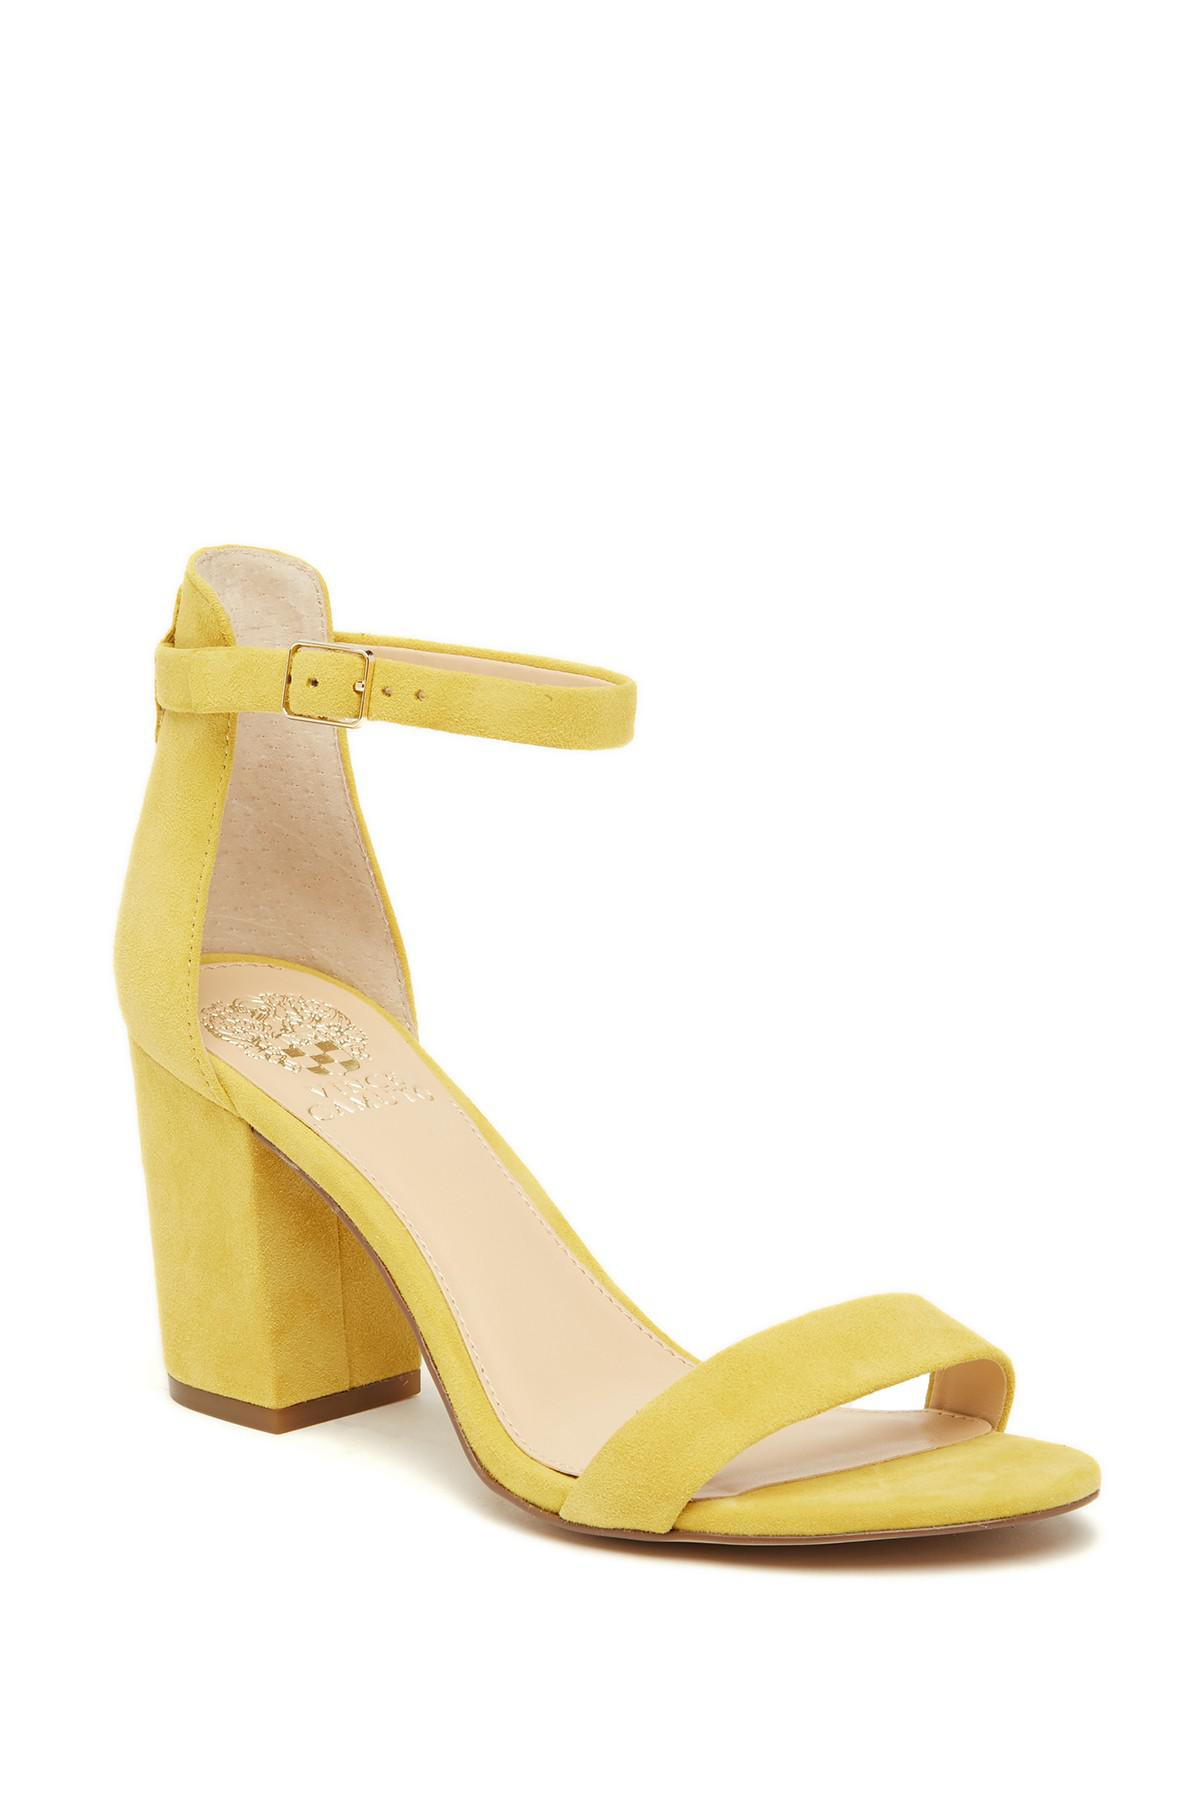 495a491231c Lyst - Vince Camuto Beah Block Heel Ankle Strap Sandal in Yellow